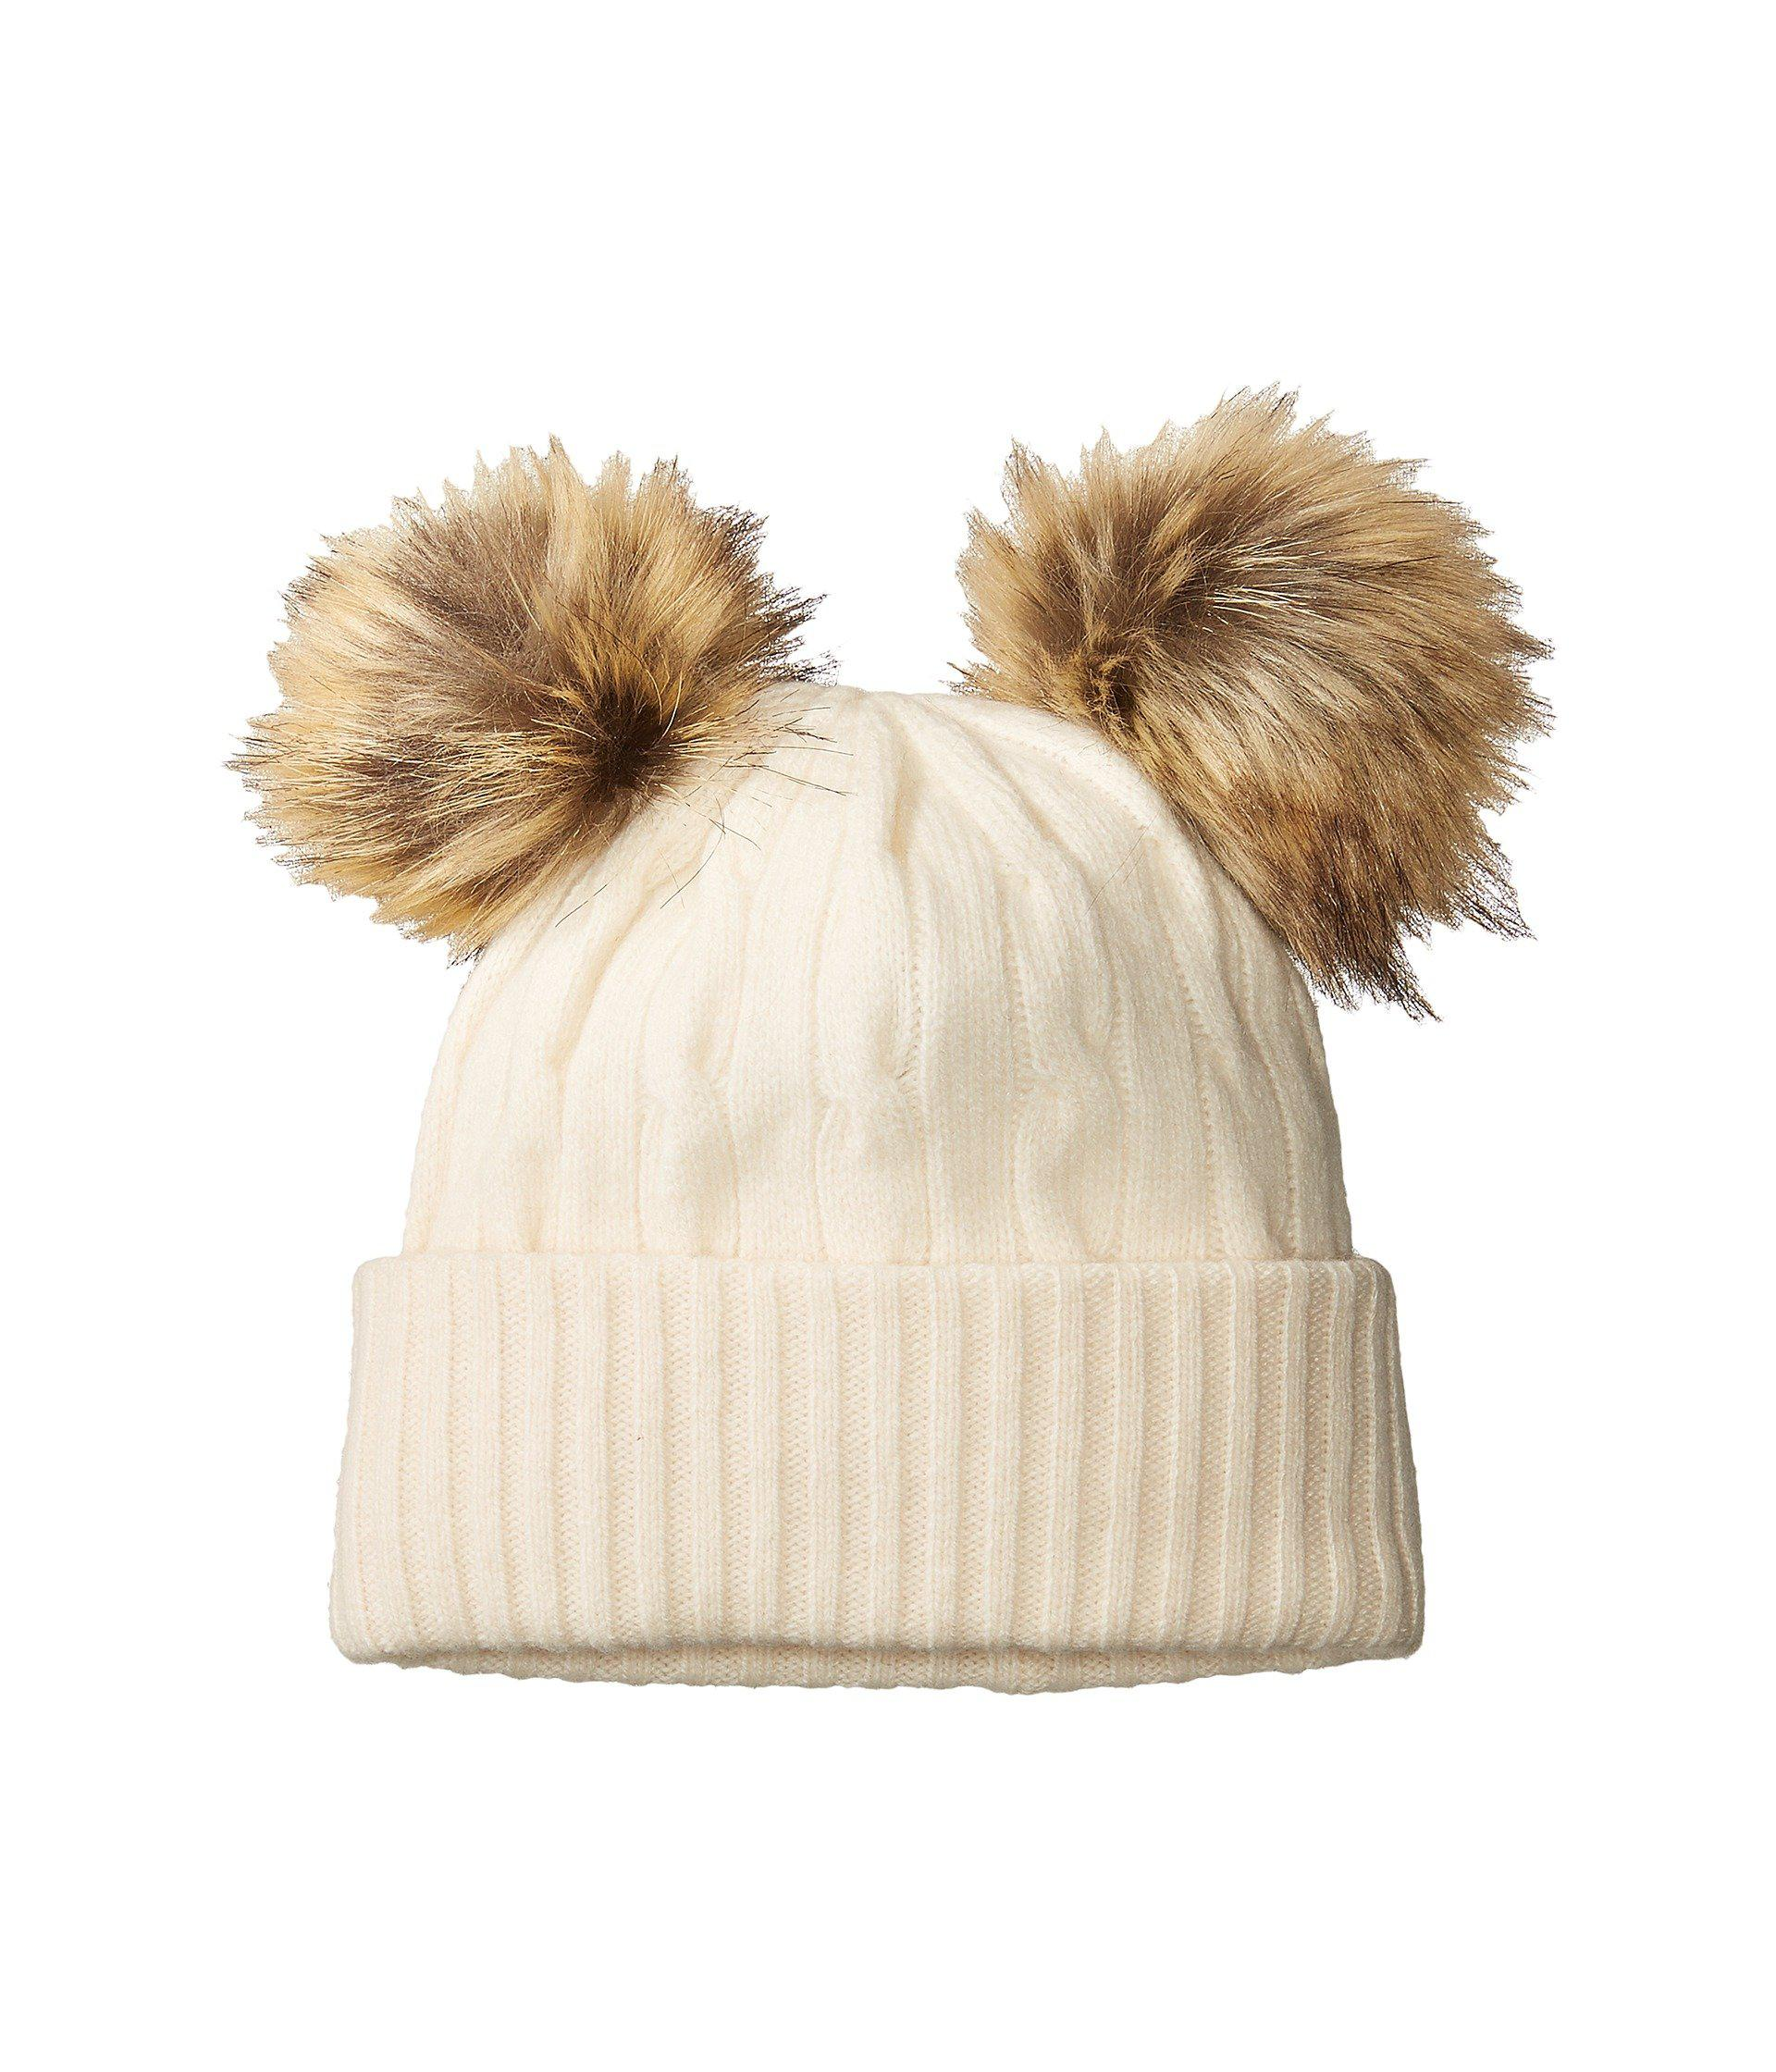 Lyst - Polo Ralph Lauren Double Pom Cashmere Blend Hat in Natural 43f33faf33a